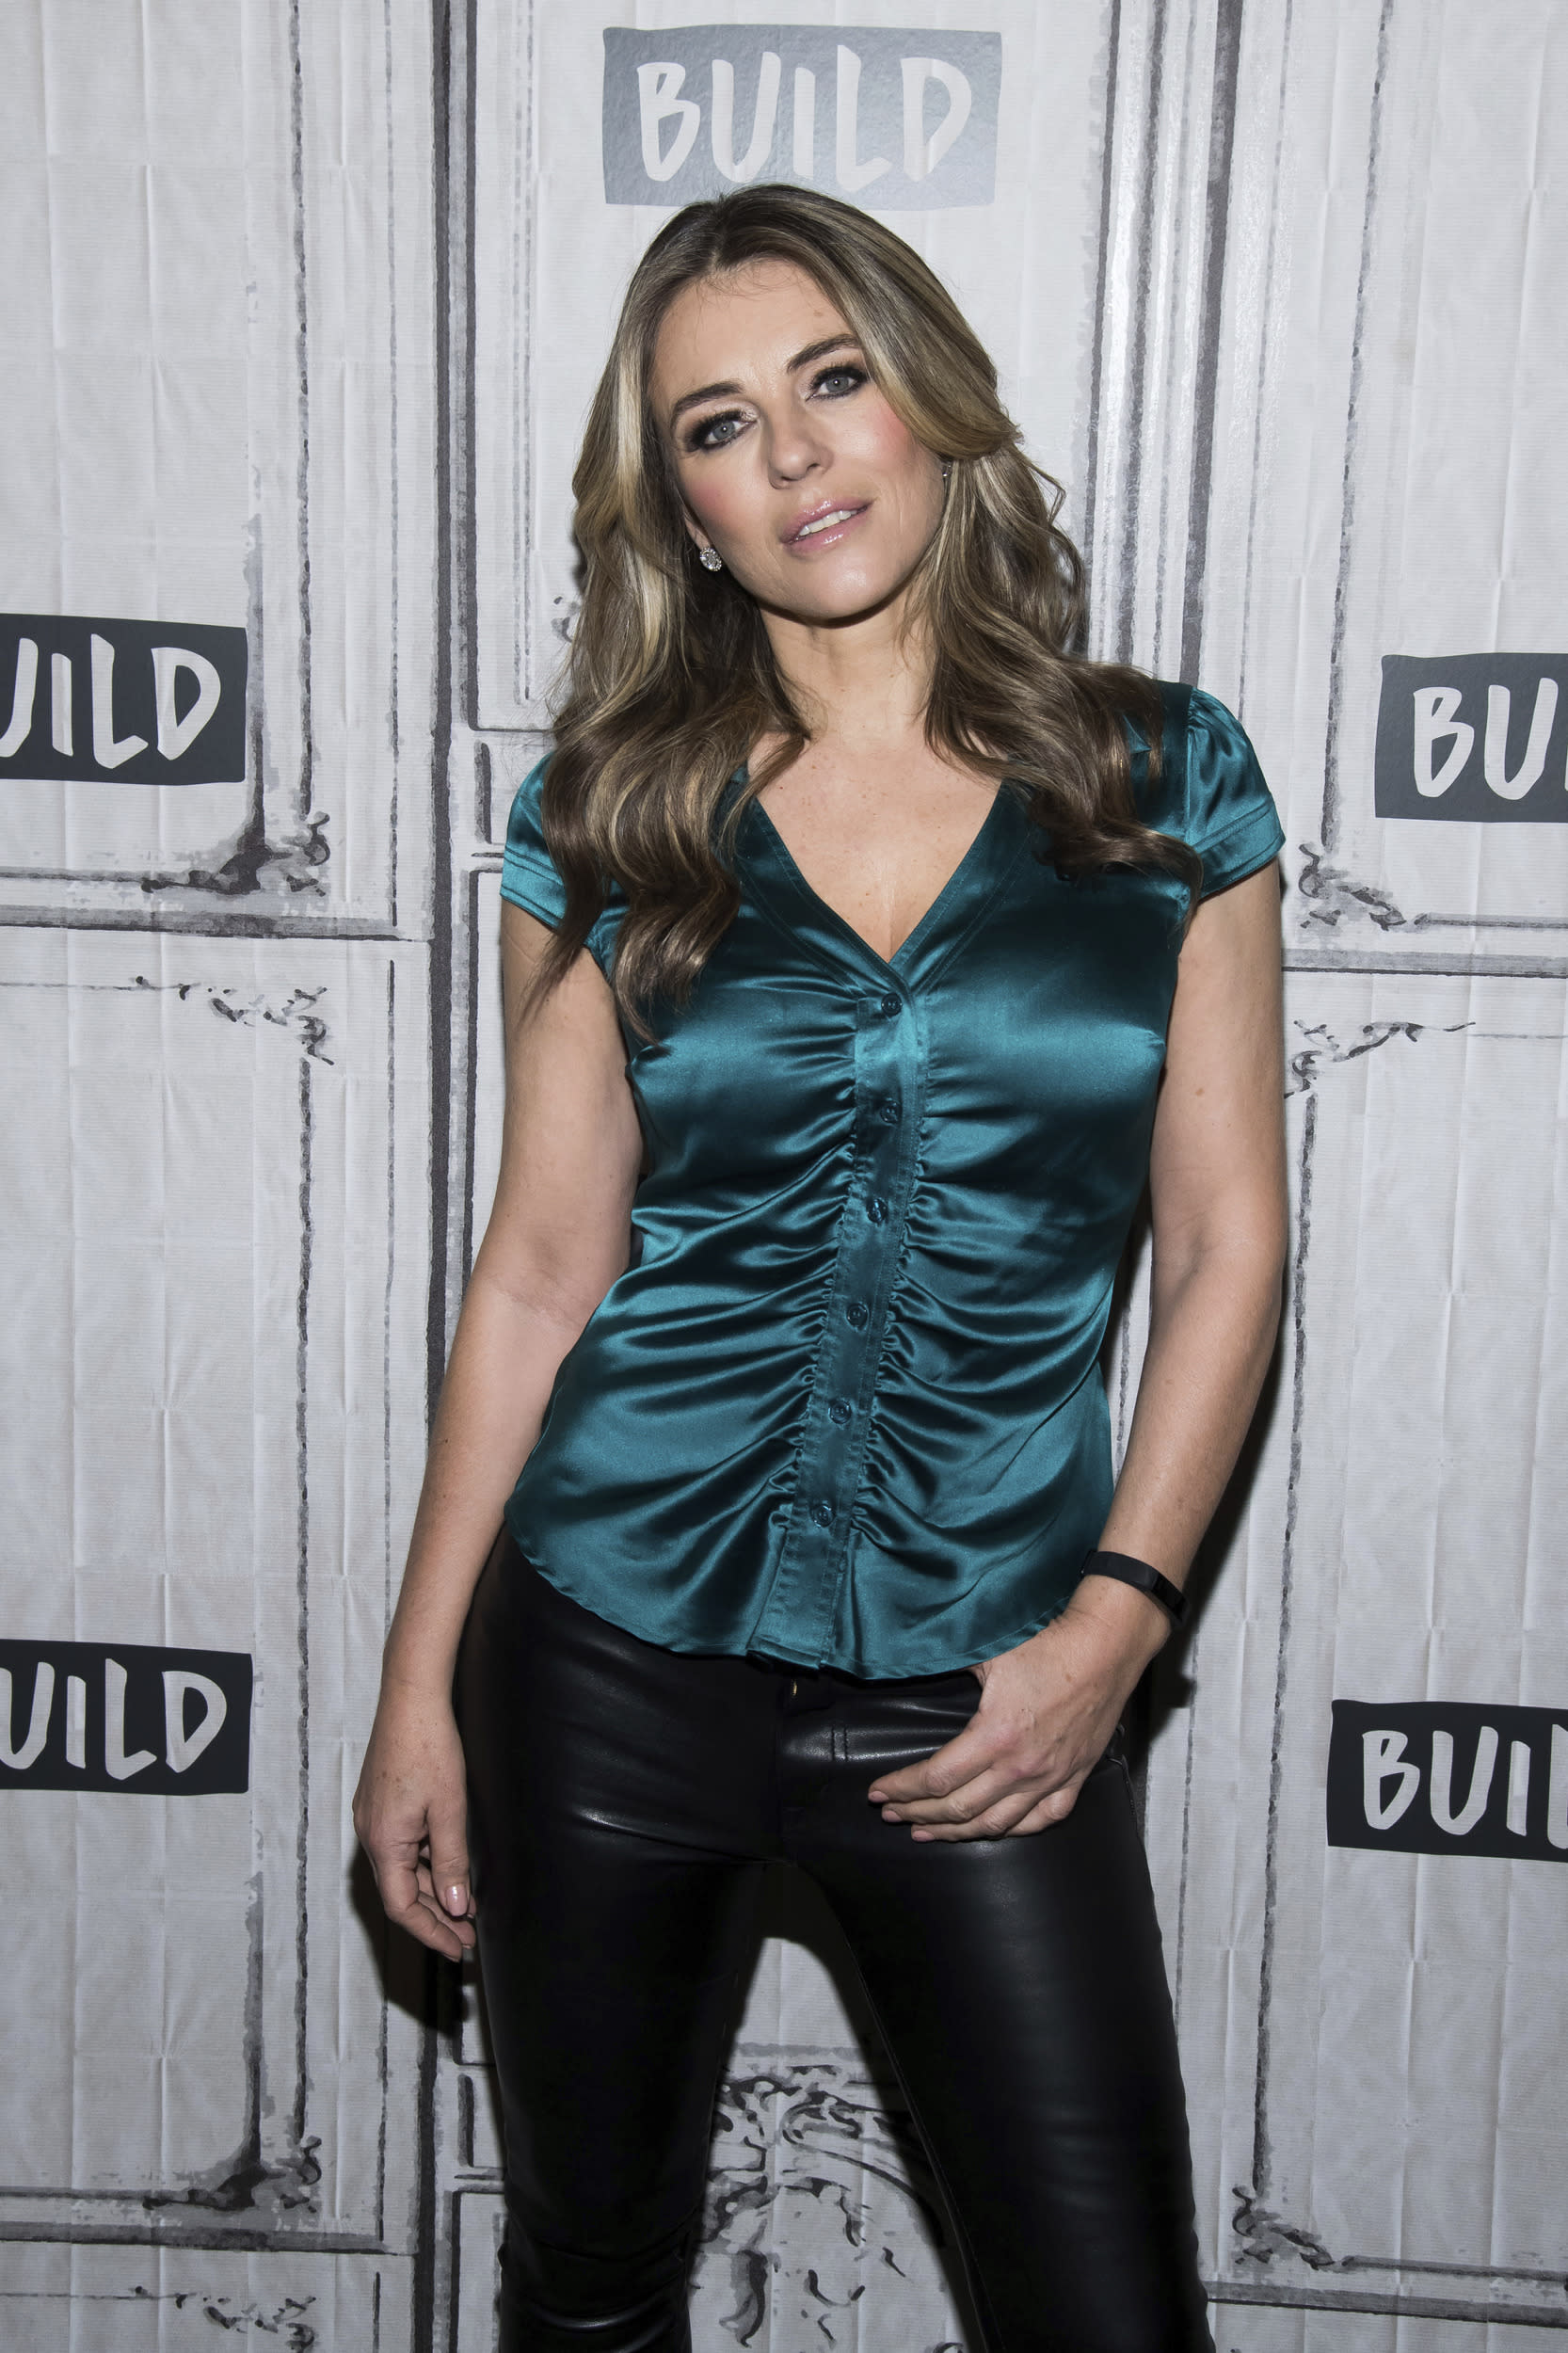 """Elizabeth Hurley participates in the BUILD Speaker Series to discuss the the television show """"The Royals"""" at AOL Studios on Wednesday, March 7, 2018, in New York. (Photo by Charles Sykes/Invision/AP)"""